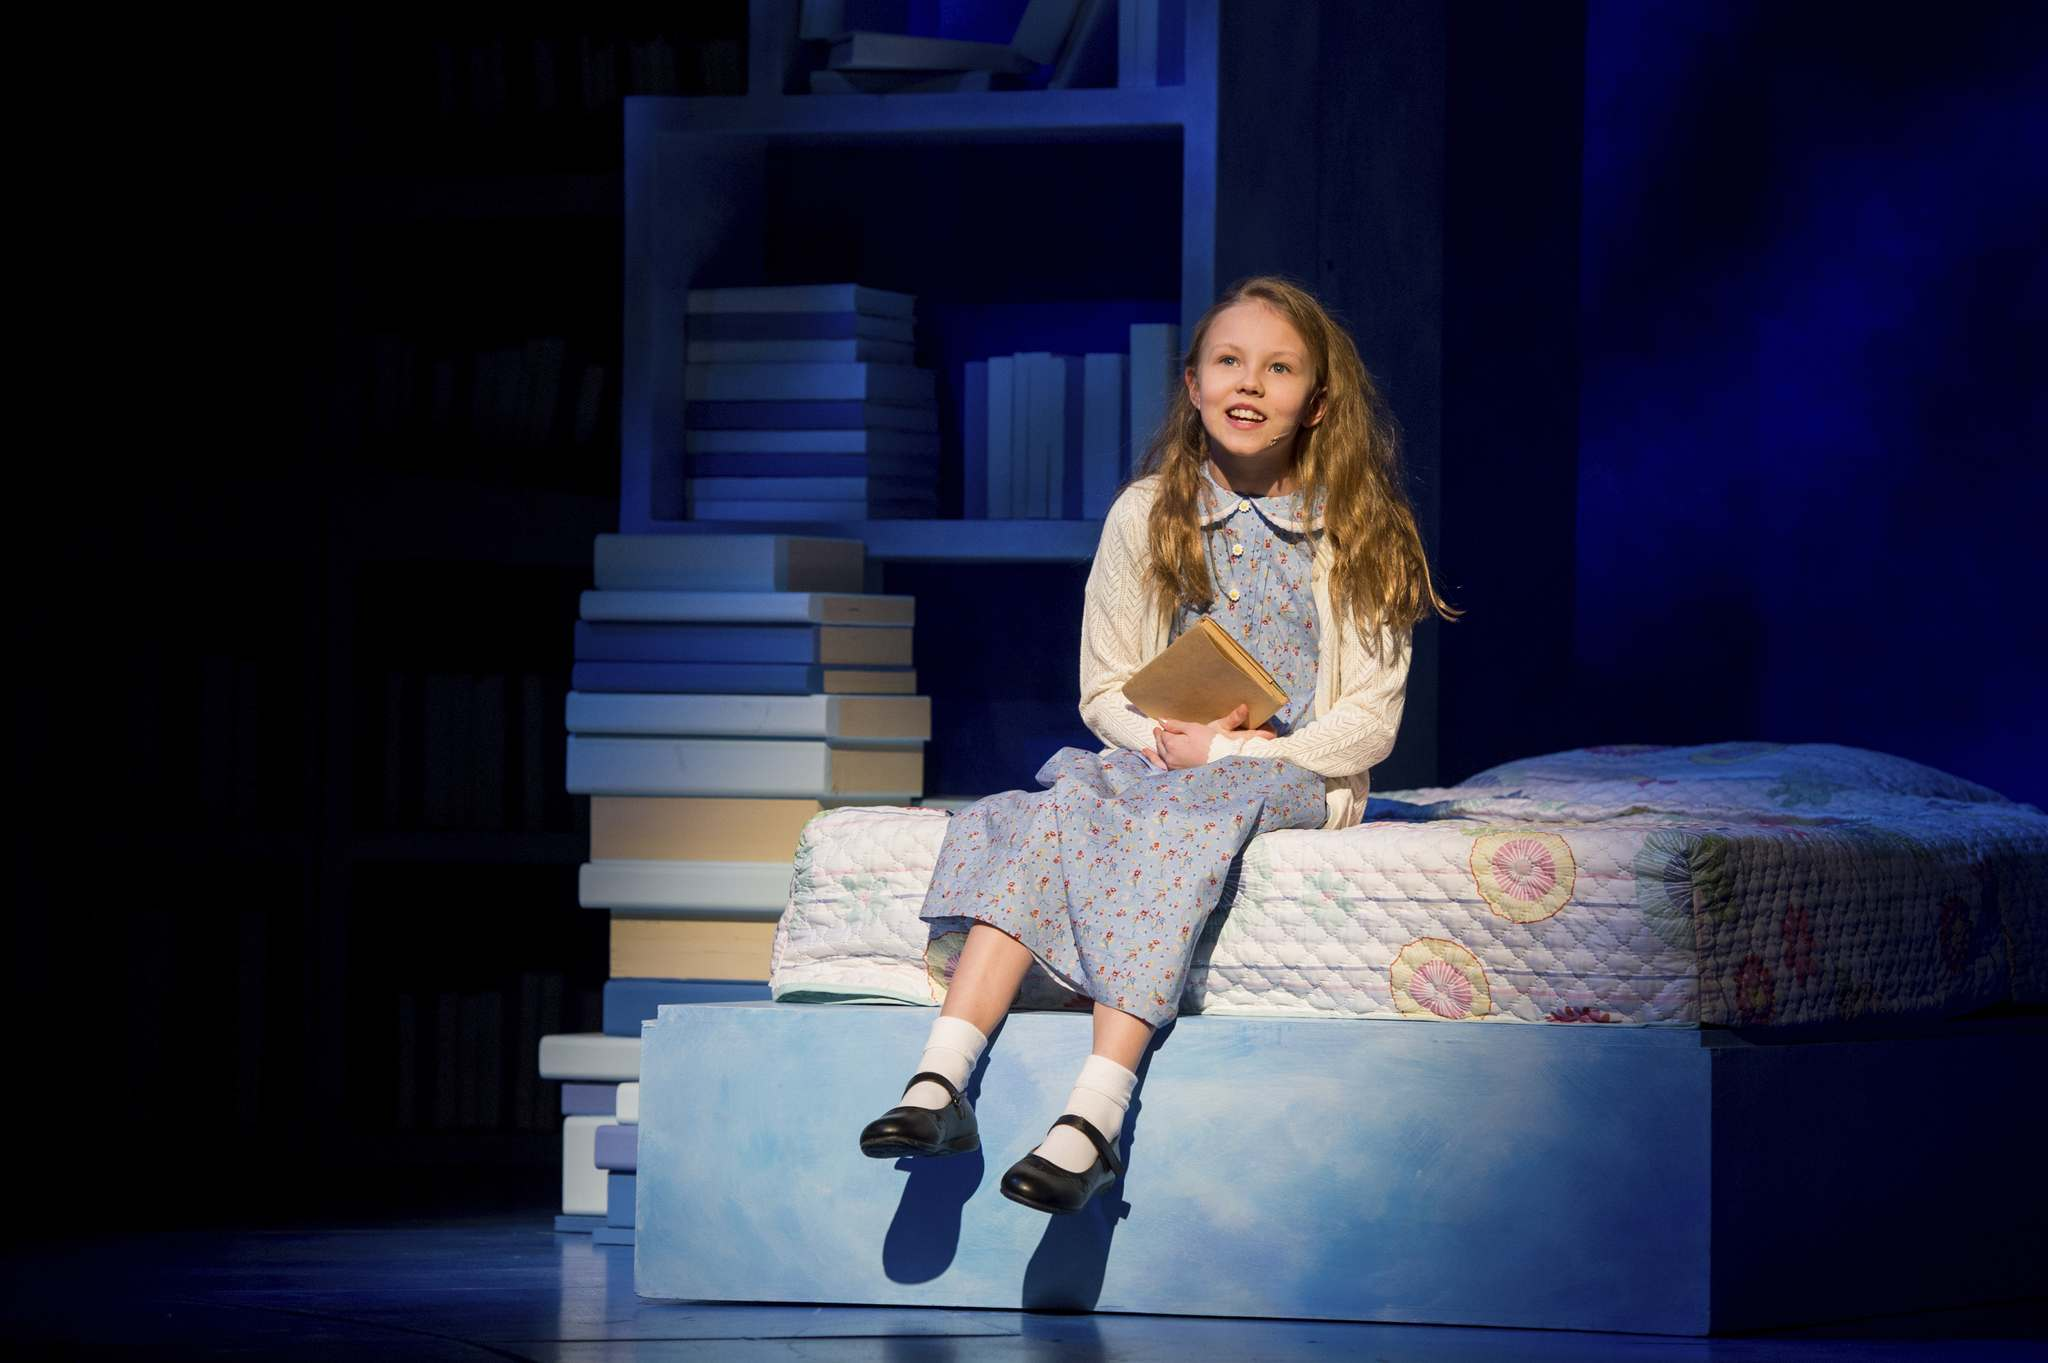 Anna Anderson-Epp plays Matilda, whose love of books helps her overcome a difficult childhood in Roald Dahl's Matilda: The Musical. (Dylan Hewlett photos)